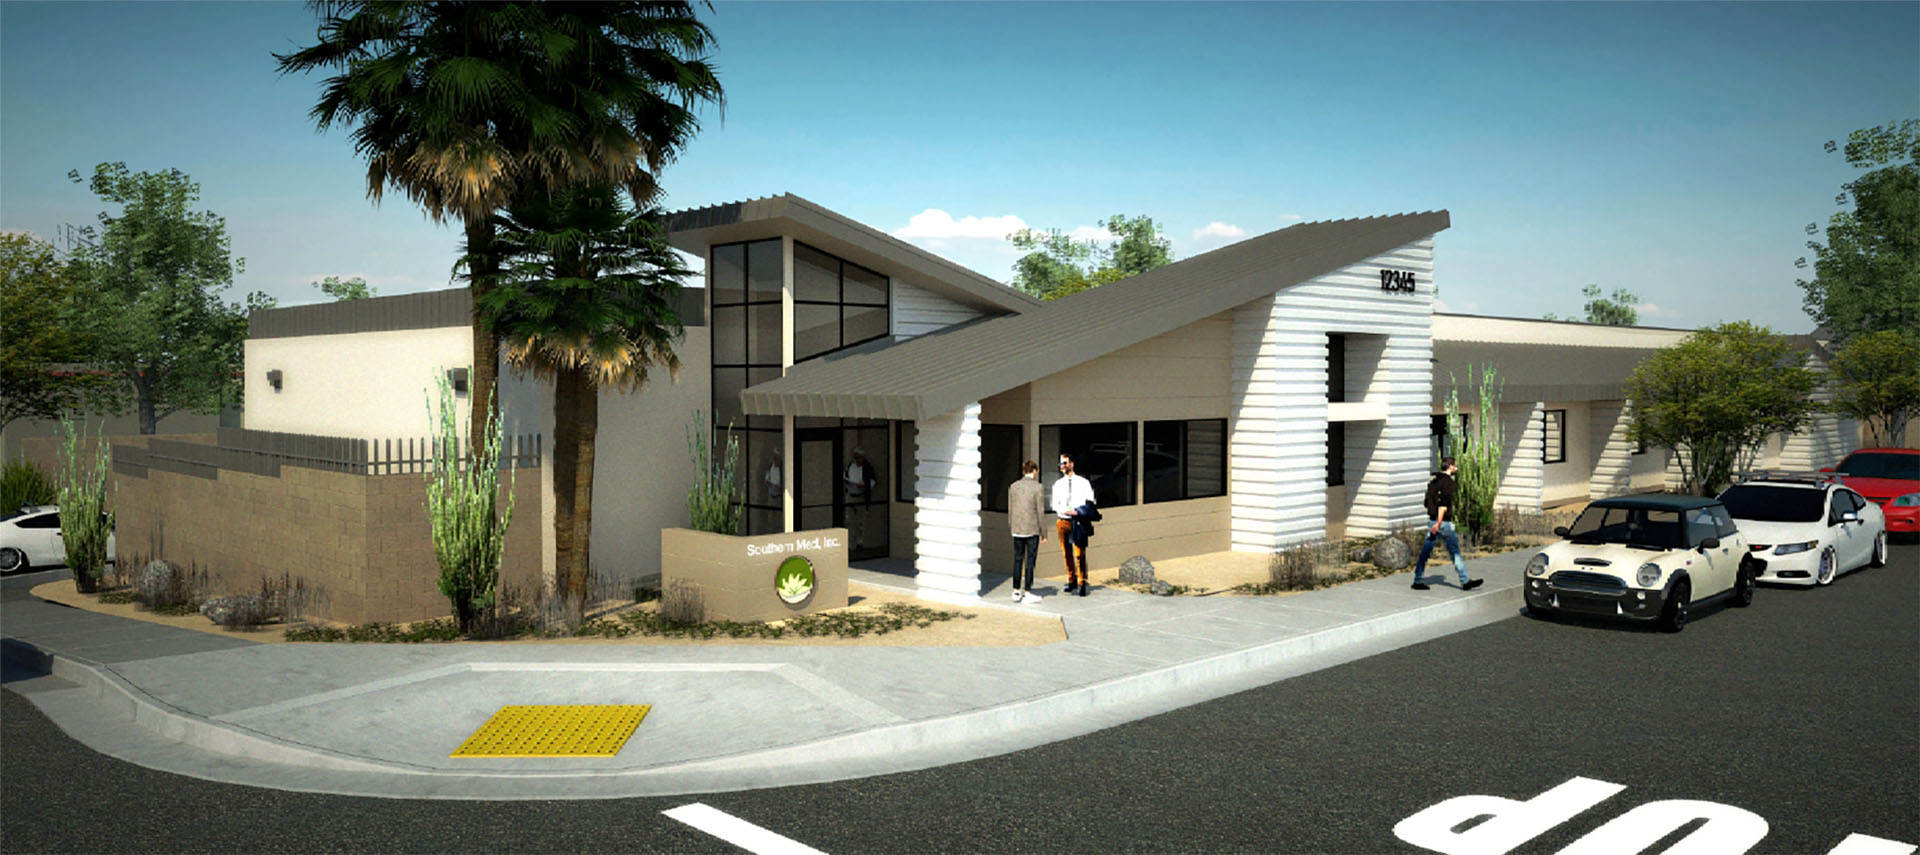 Building Rendering Image of 36737 Cathedral Canyon Dr, Cathedral City, CA